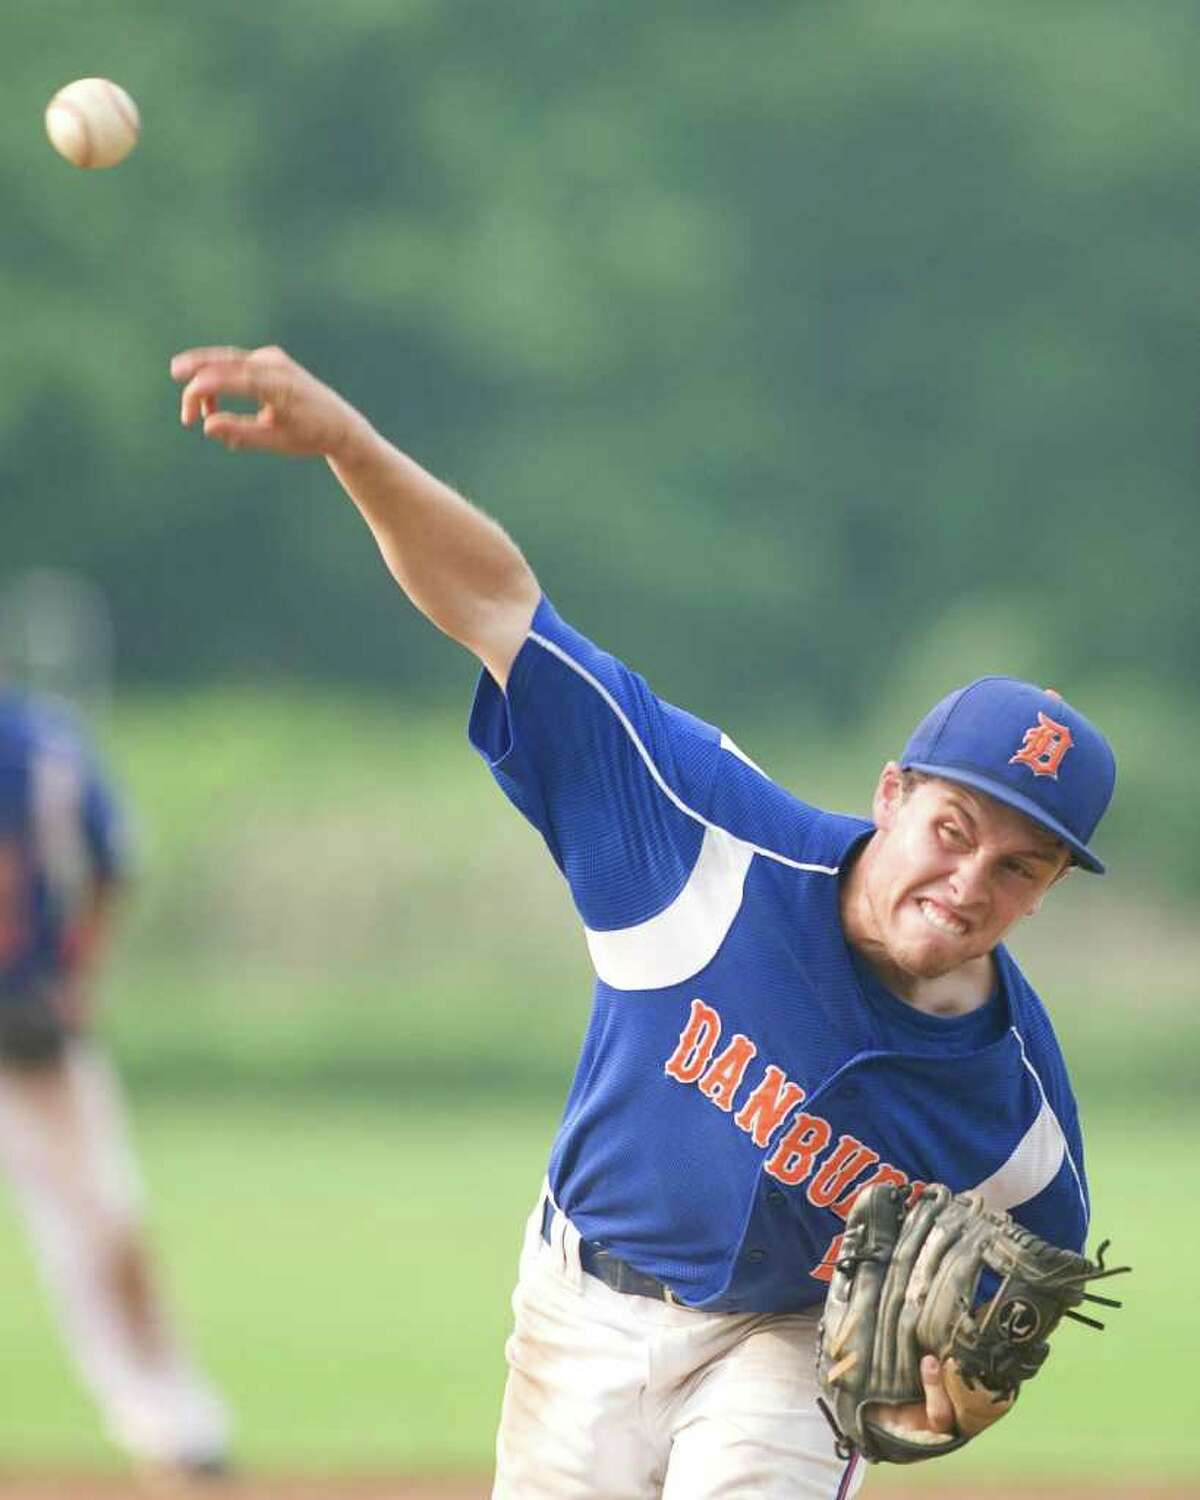 Danbury's Robbie Meerman pitched six innings against Staples in the Class LL state tournament second round game Wednesday at Danbury High School.